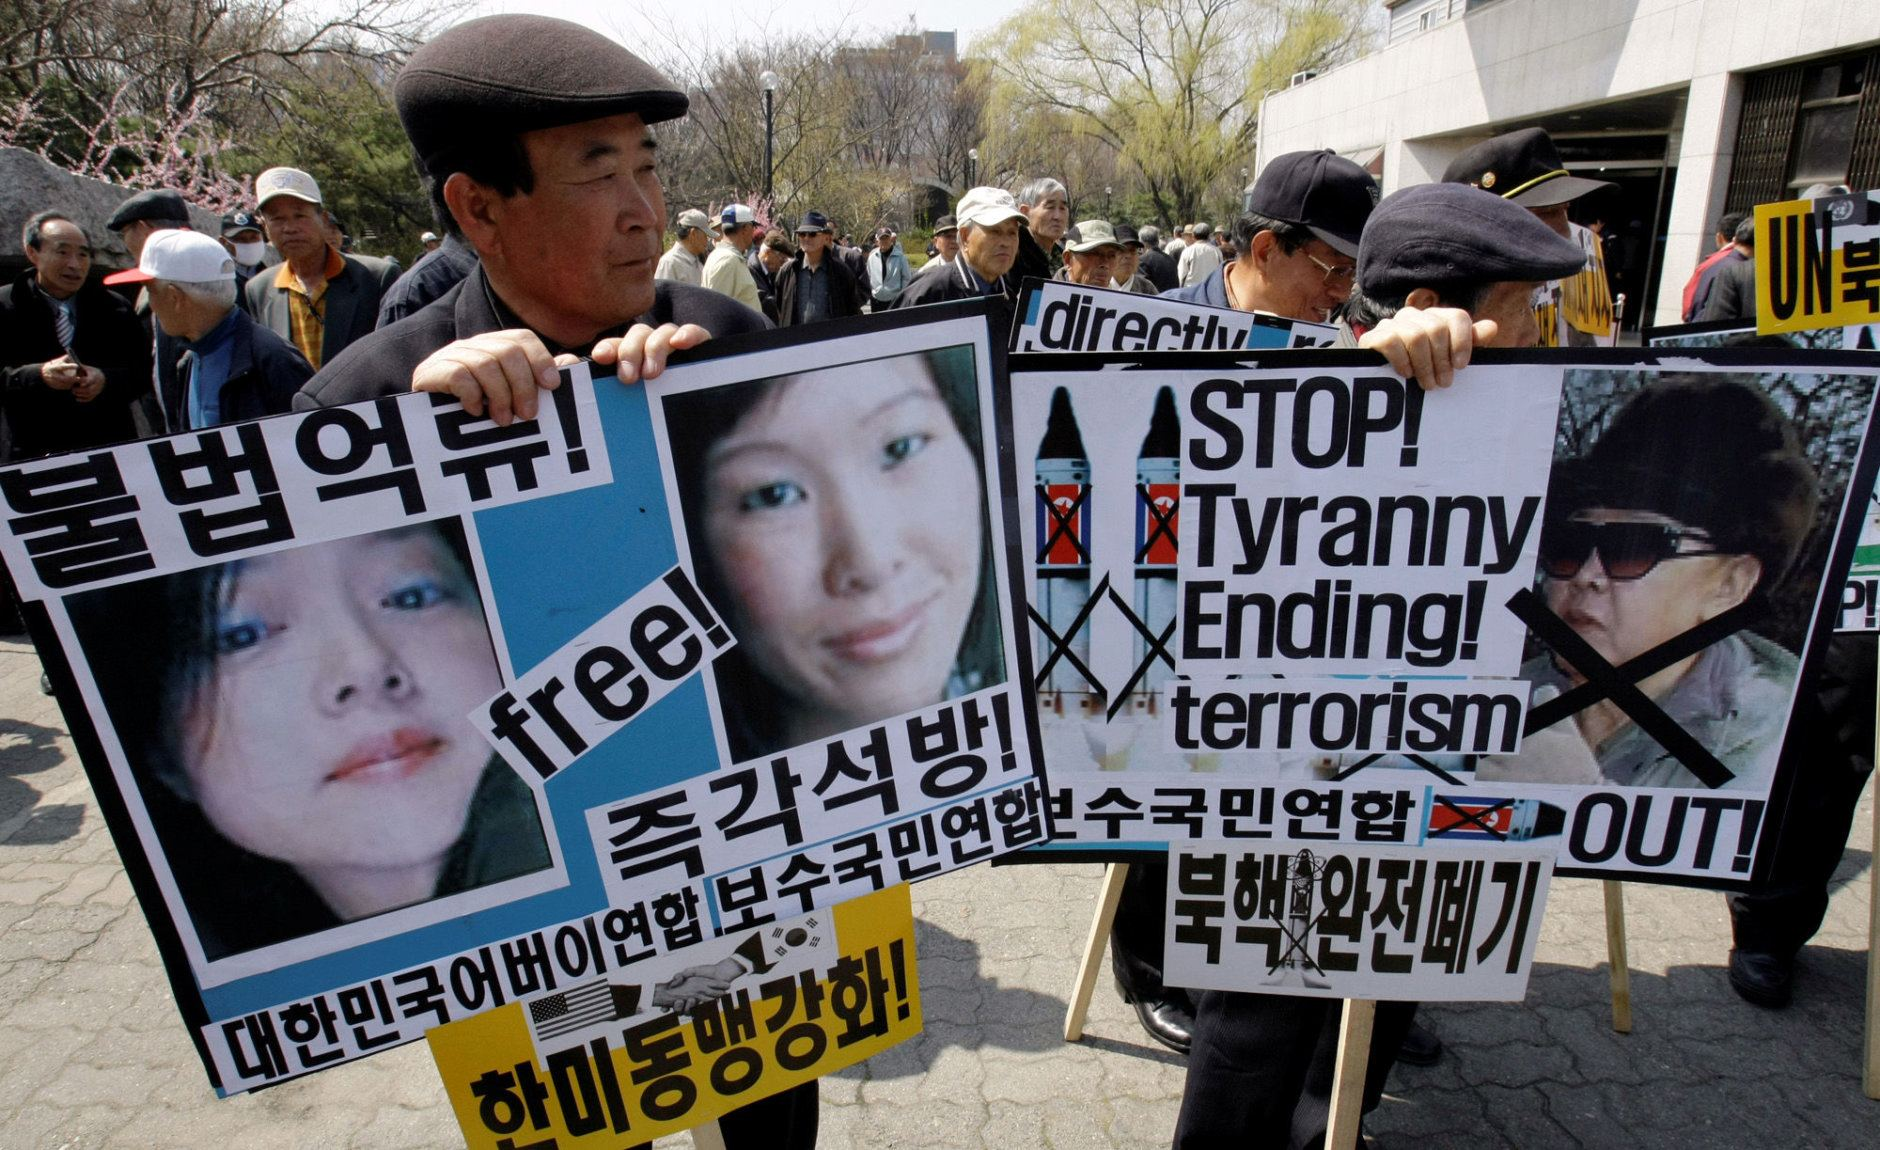 In this photo taken Thursday, April 2, 2009, South Korean protesters hold  pictures of two American journalists Euna Lee, left, Laura Ling, center, and North leader Kim Jong Il, right, during a rally against North Korea in Seoul, South Korea. On Friday, April 24, 2009, North Korea's state news agency said the country has concluded an investigation of two detained American journalists and formally decided to indict them. (AP Photo/ Lee Jin-man)